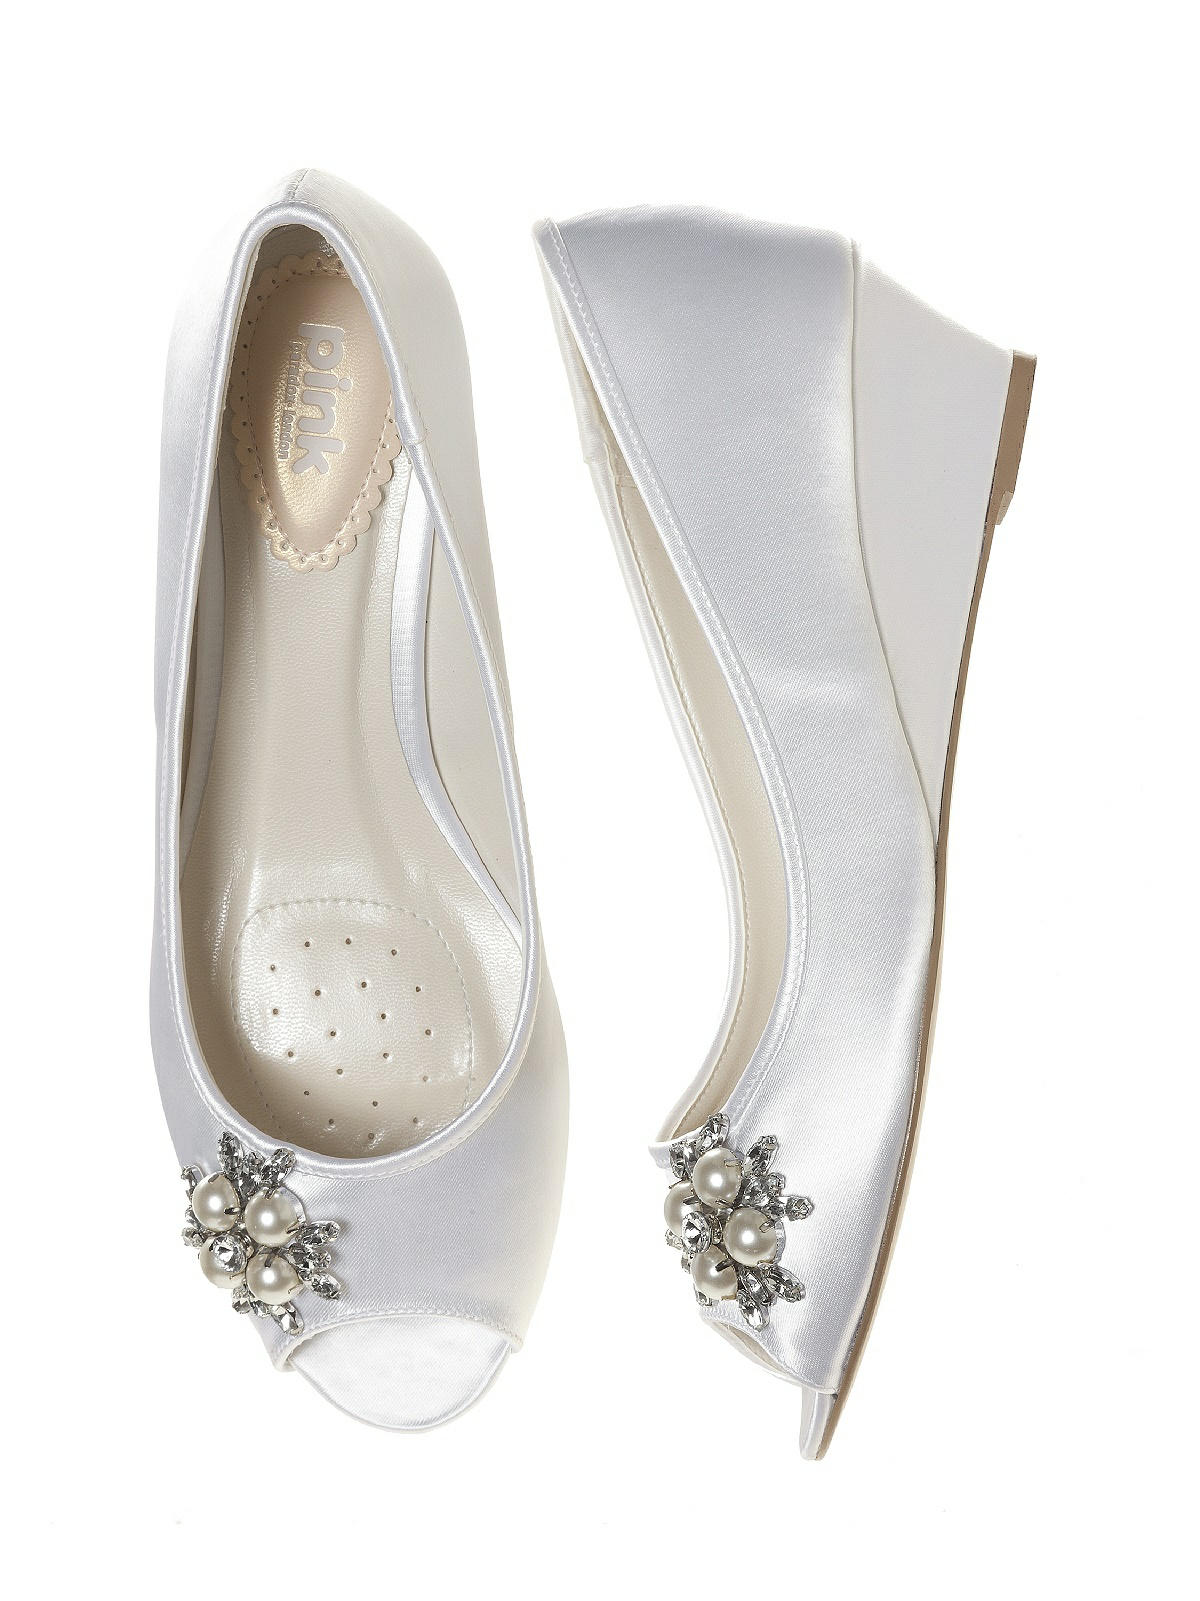 Frosting Dyeable Satin Bridal Wedge The Dessy Group